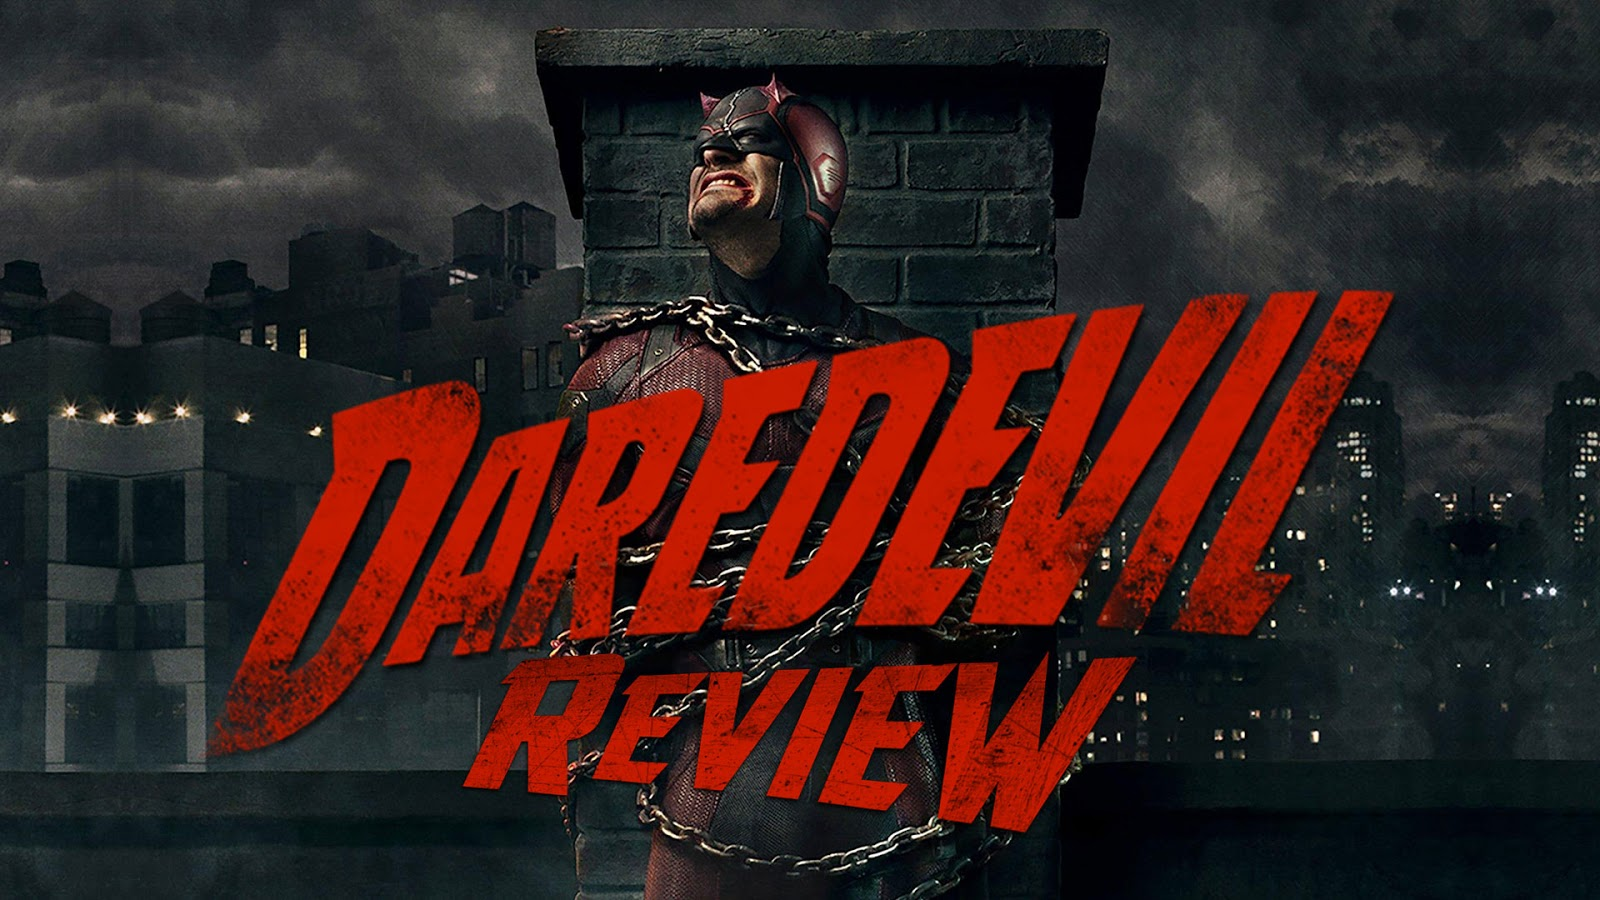 movie review Daredevil Season 2 podcast